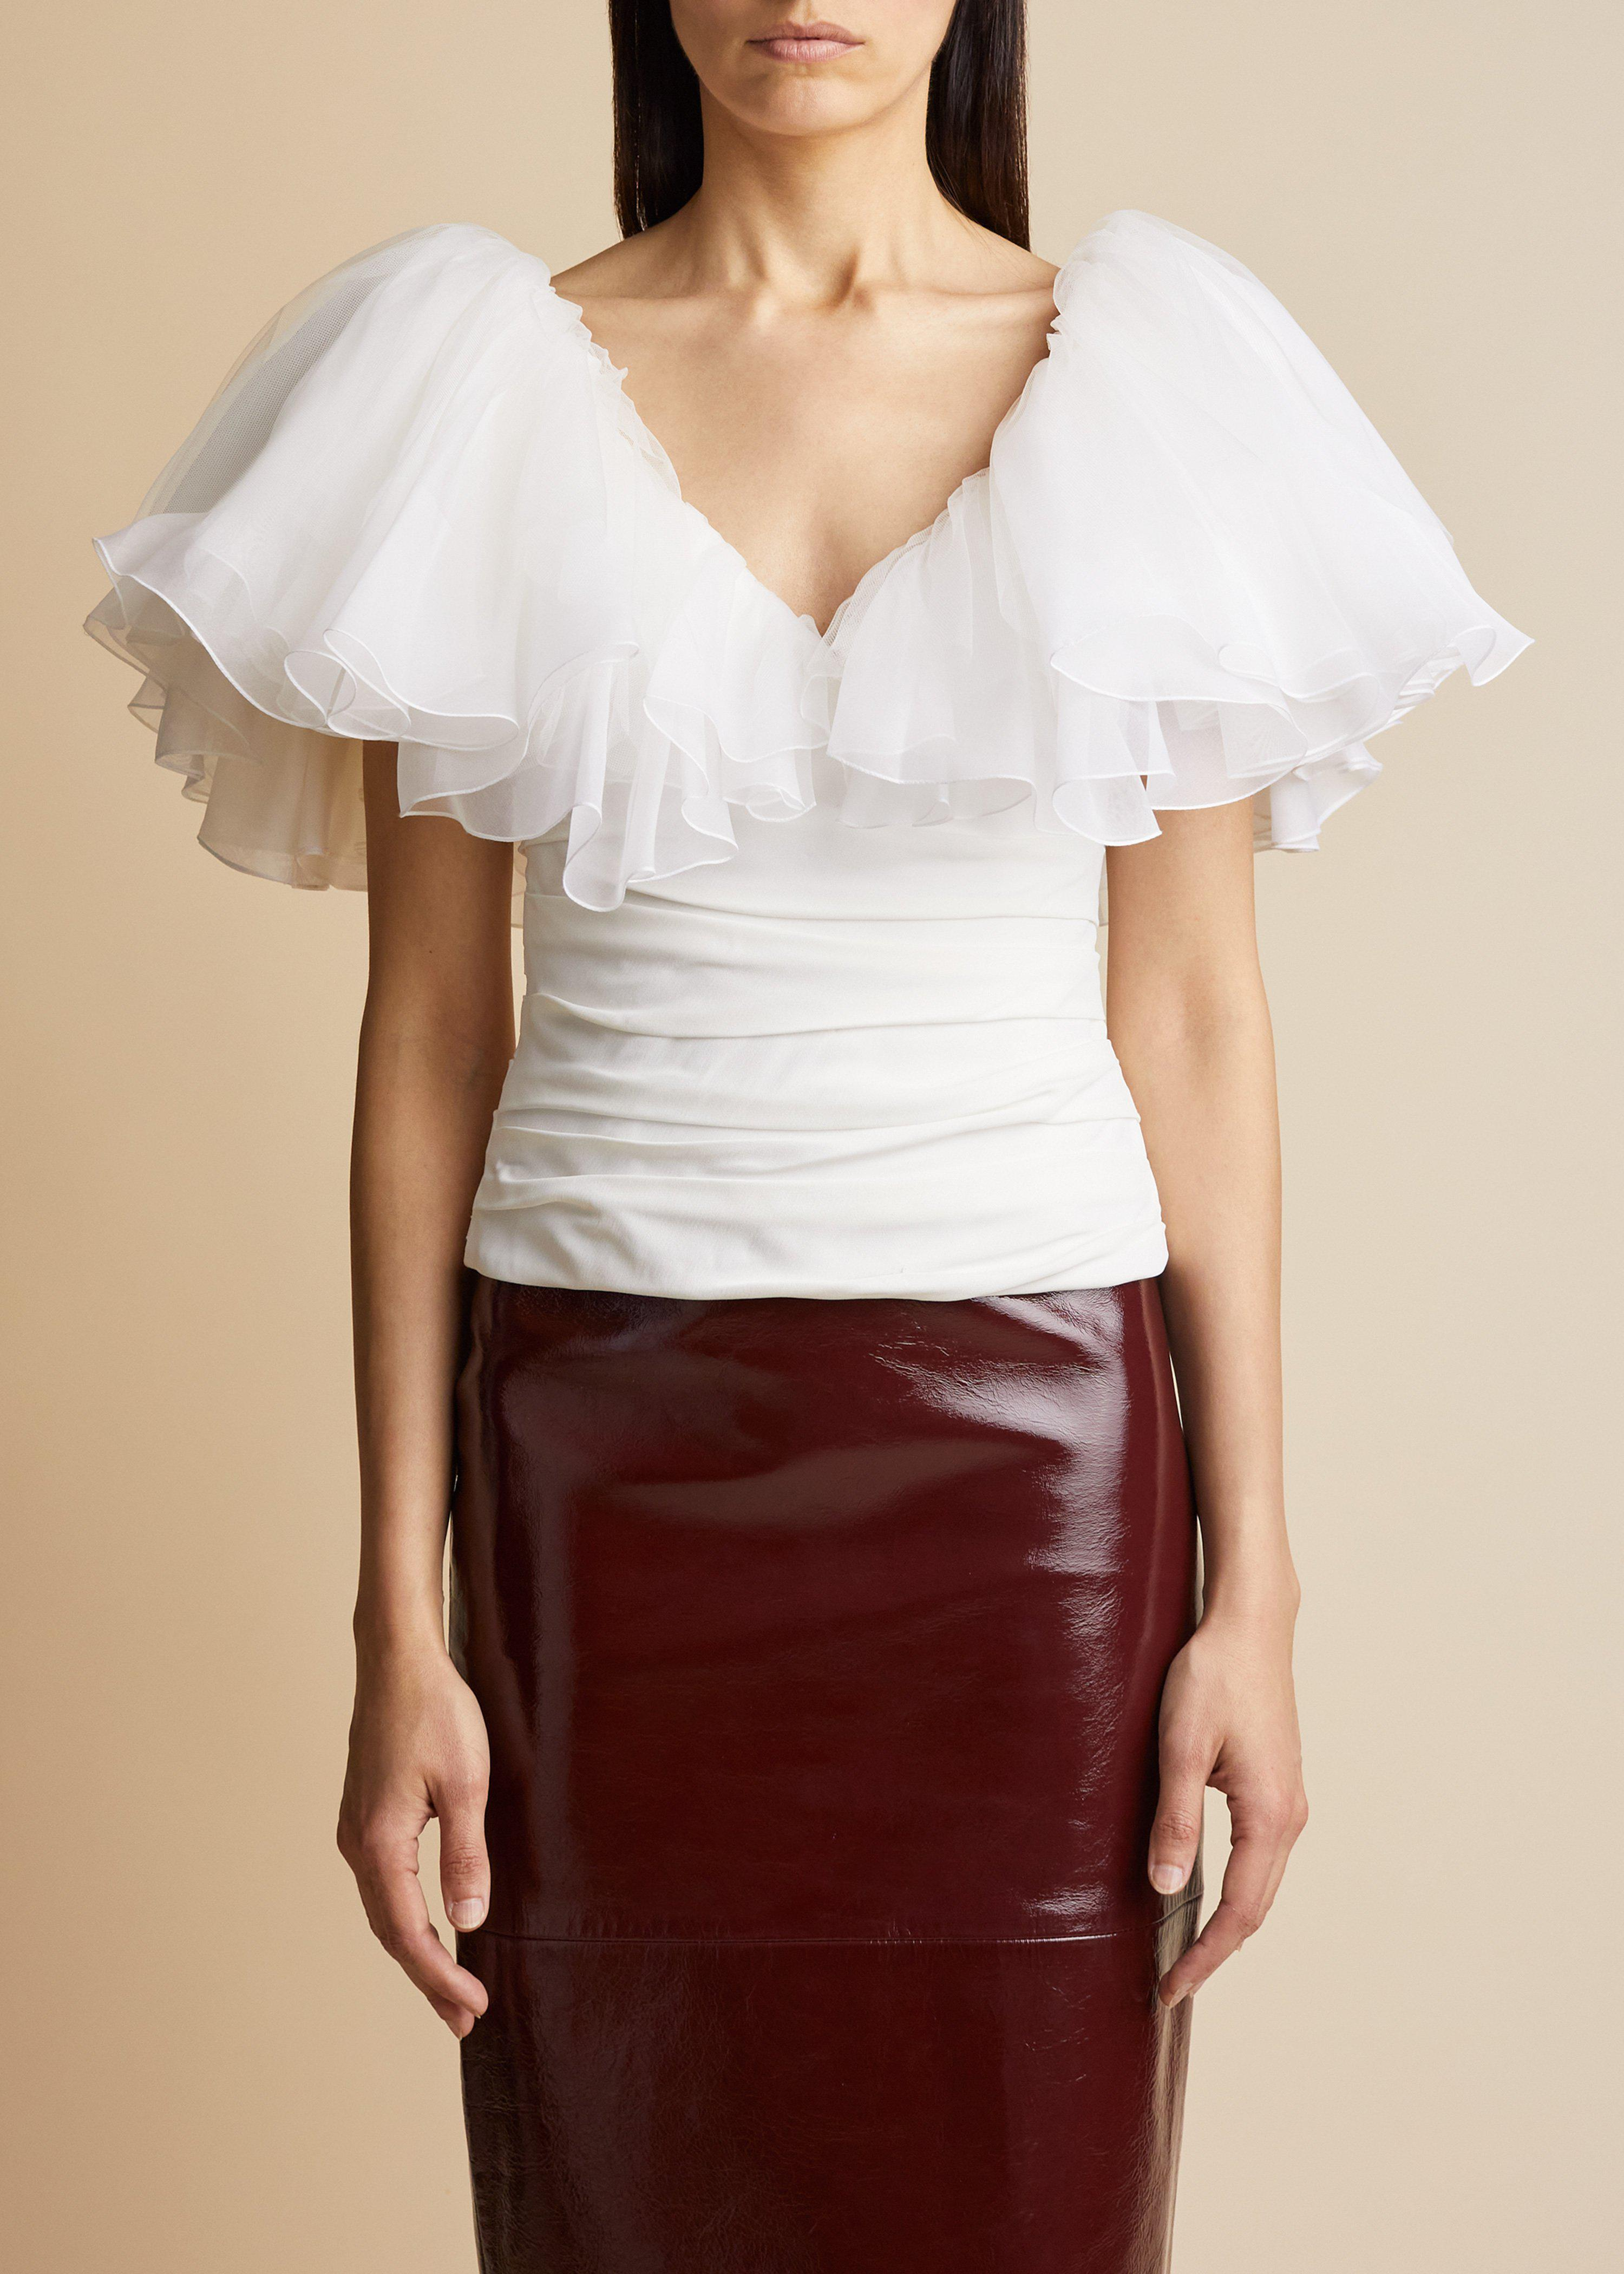 The Marca Top in Ivory